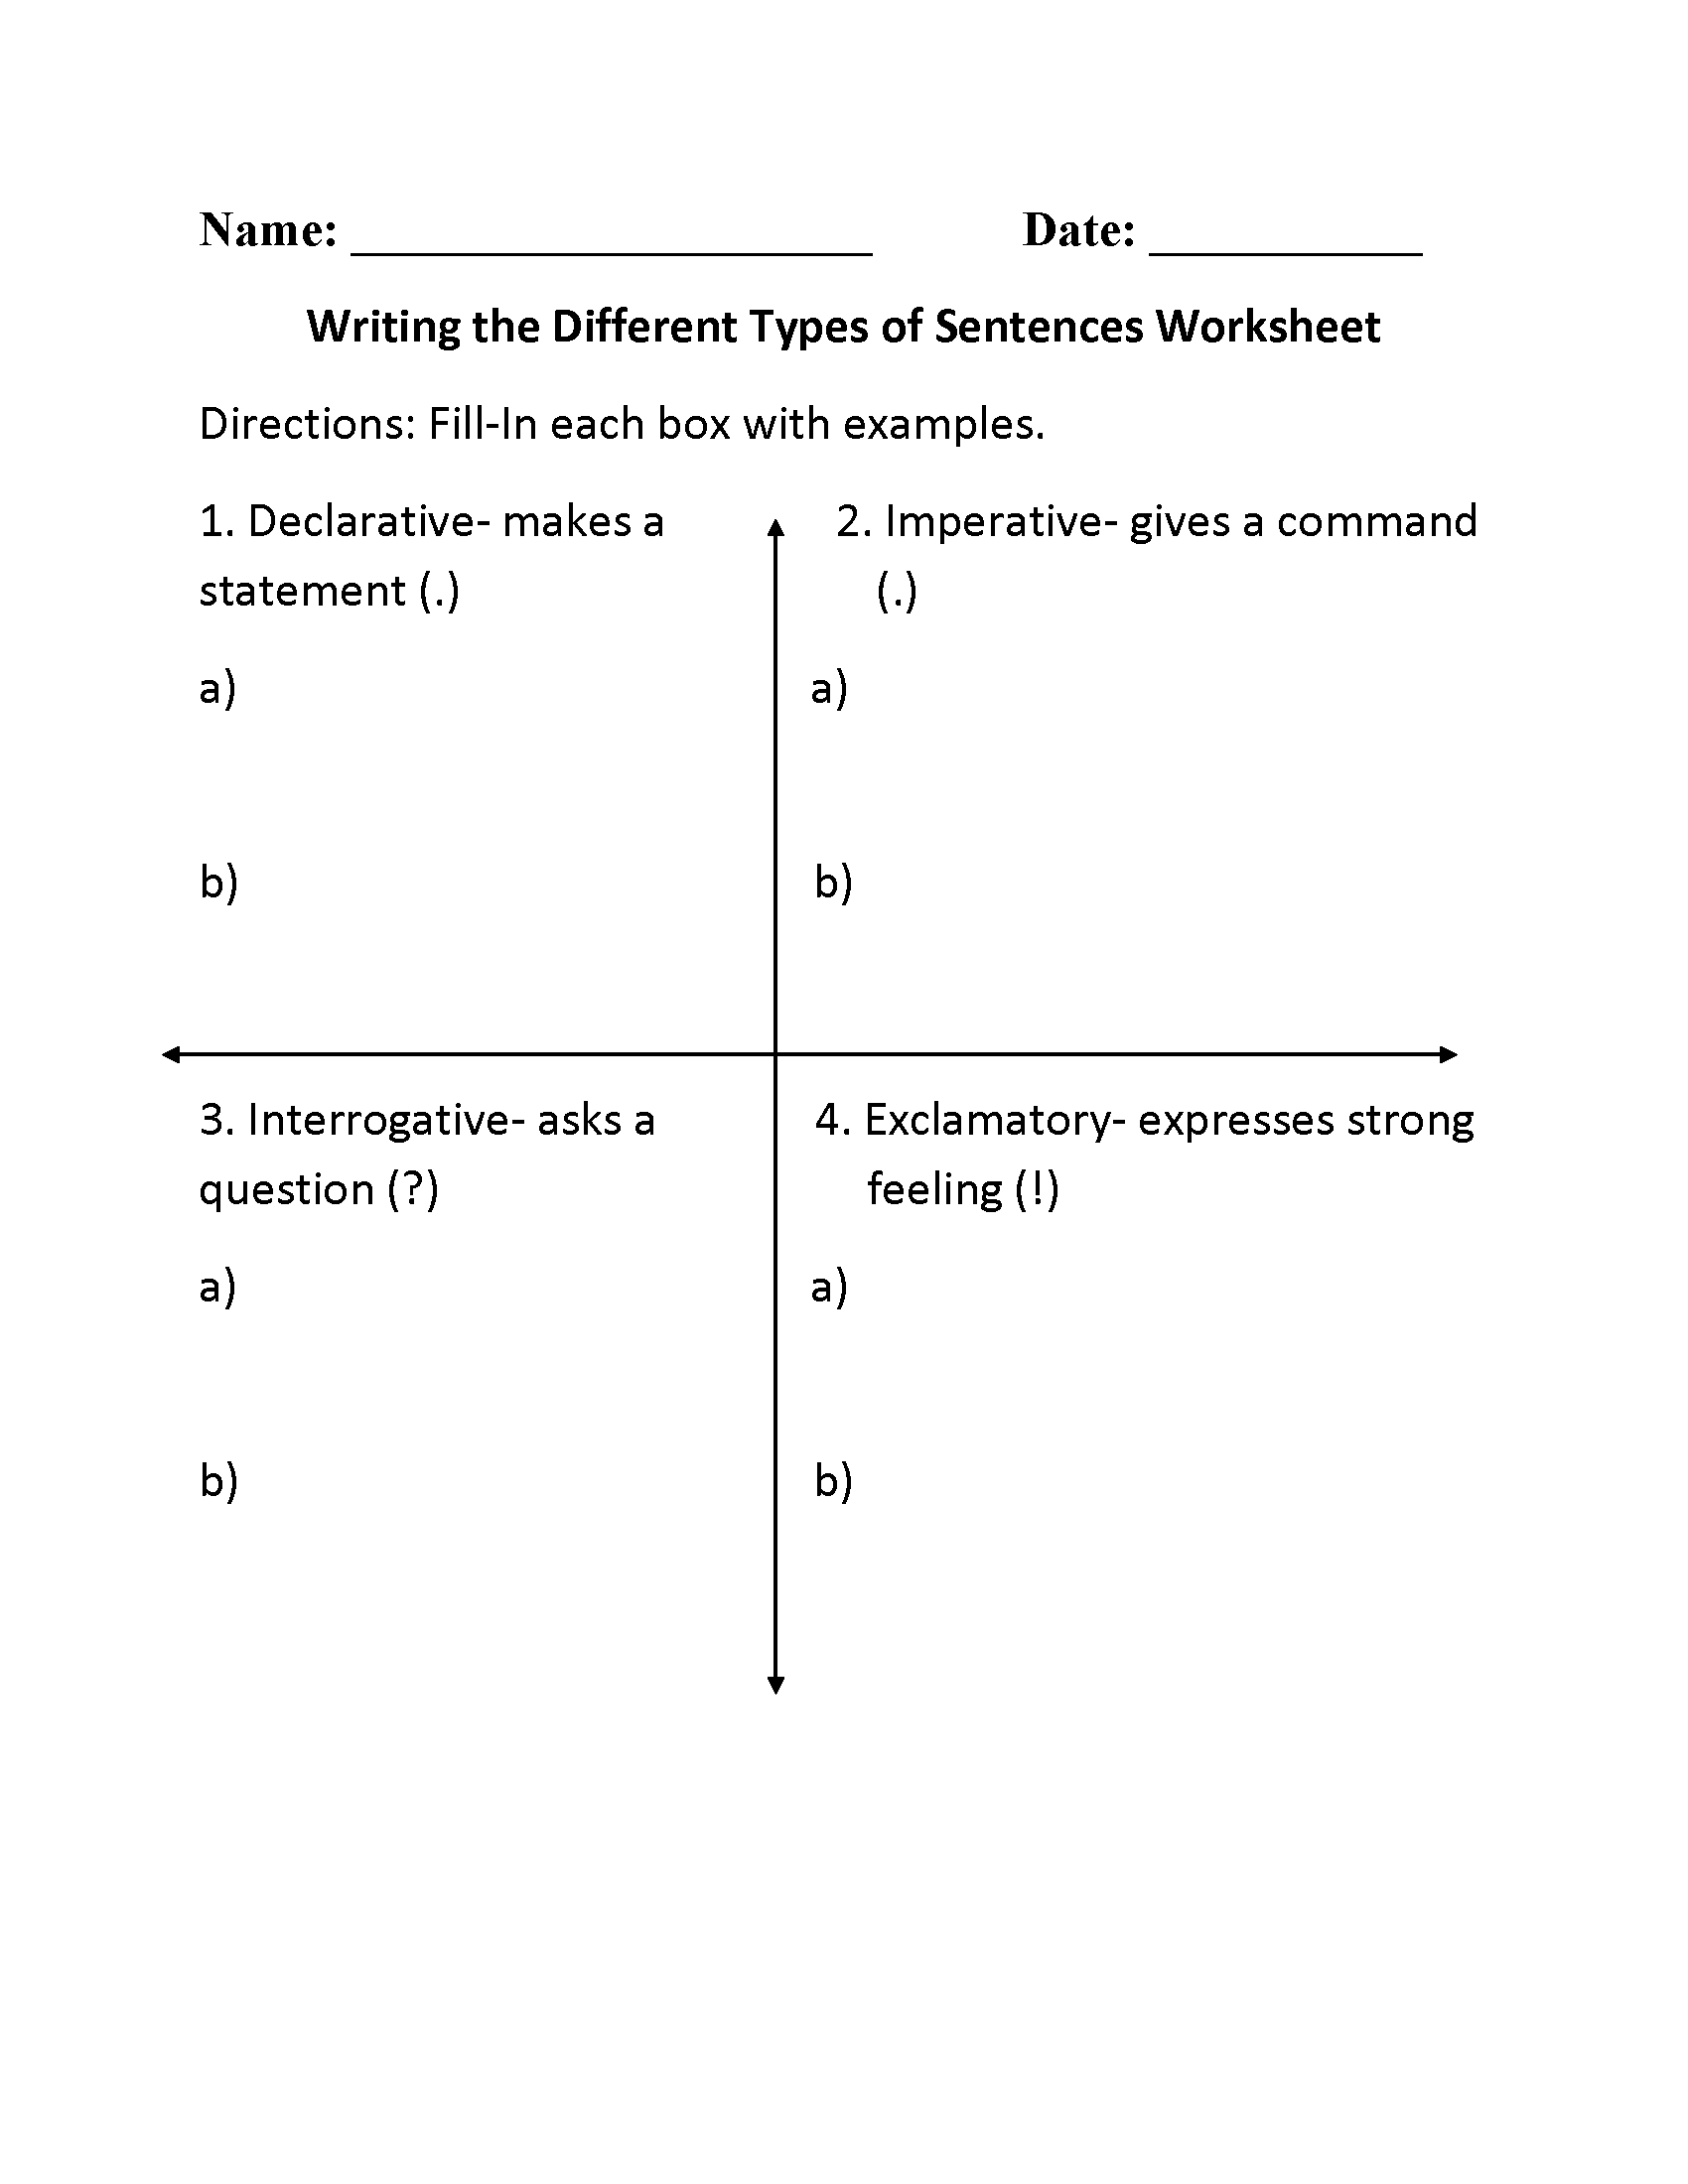 Worksheets 4 Types Of Sentences Worksheet sentences worksheets types of worksheet